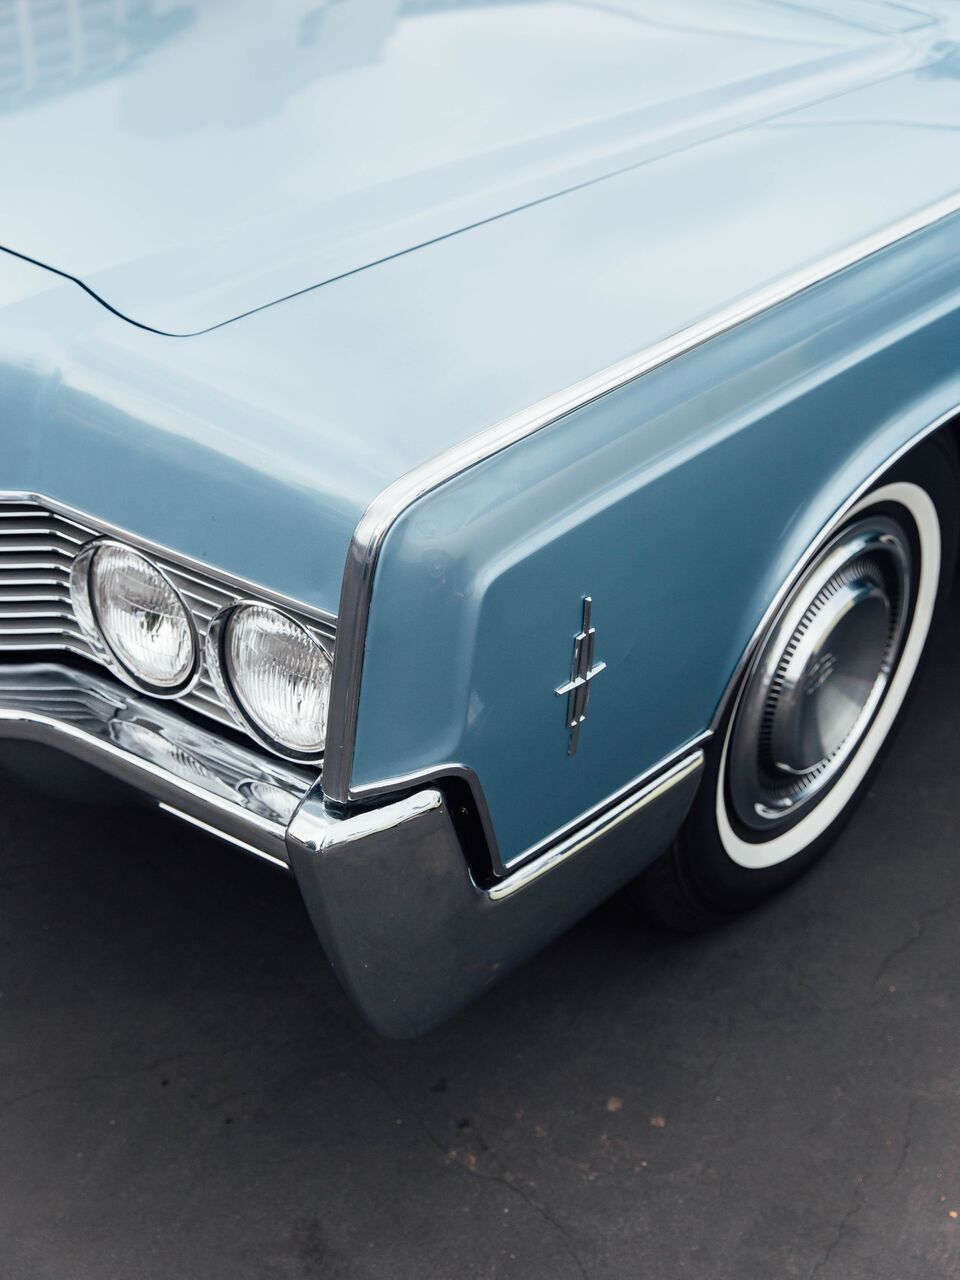 Some things are worth the wait. And for Bud Slater, it was his 1966 Lincoln Continental Coupe.